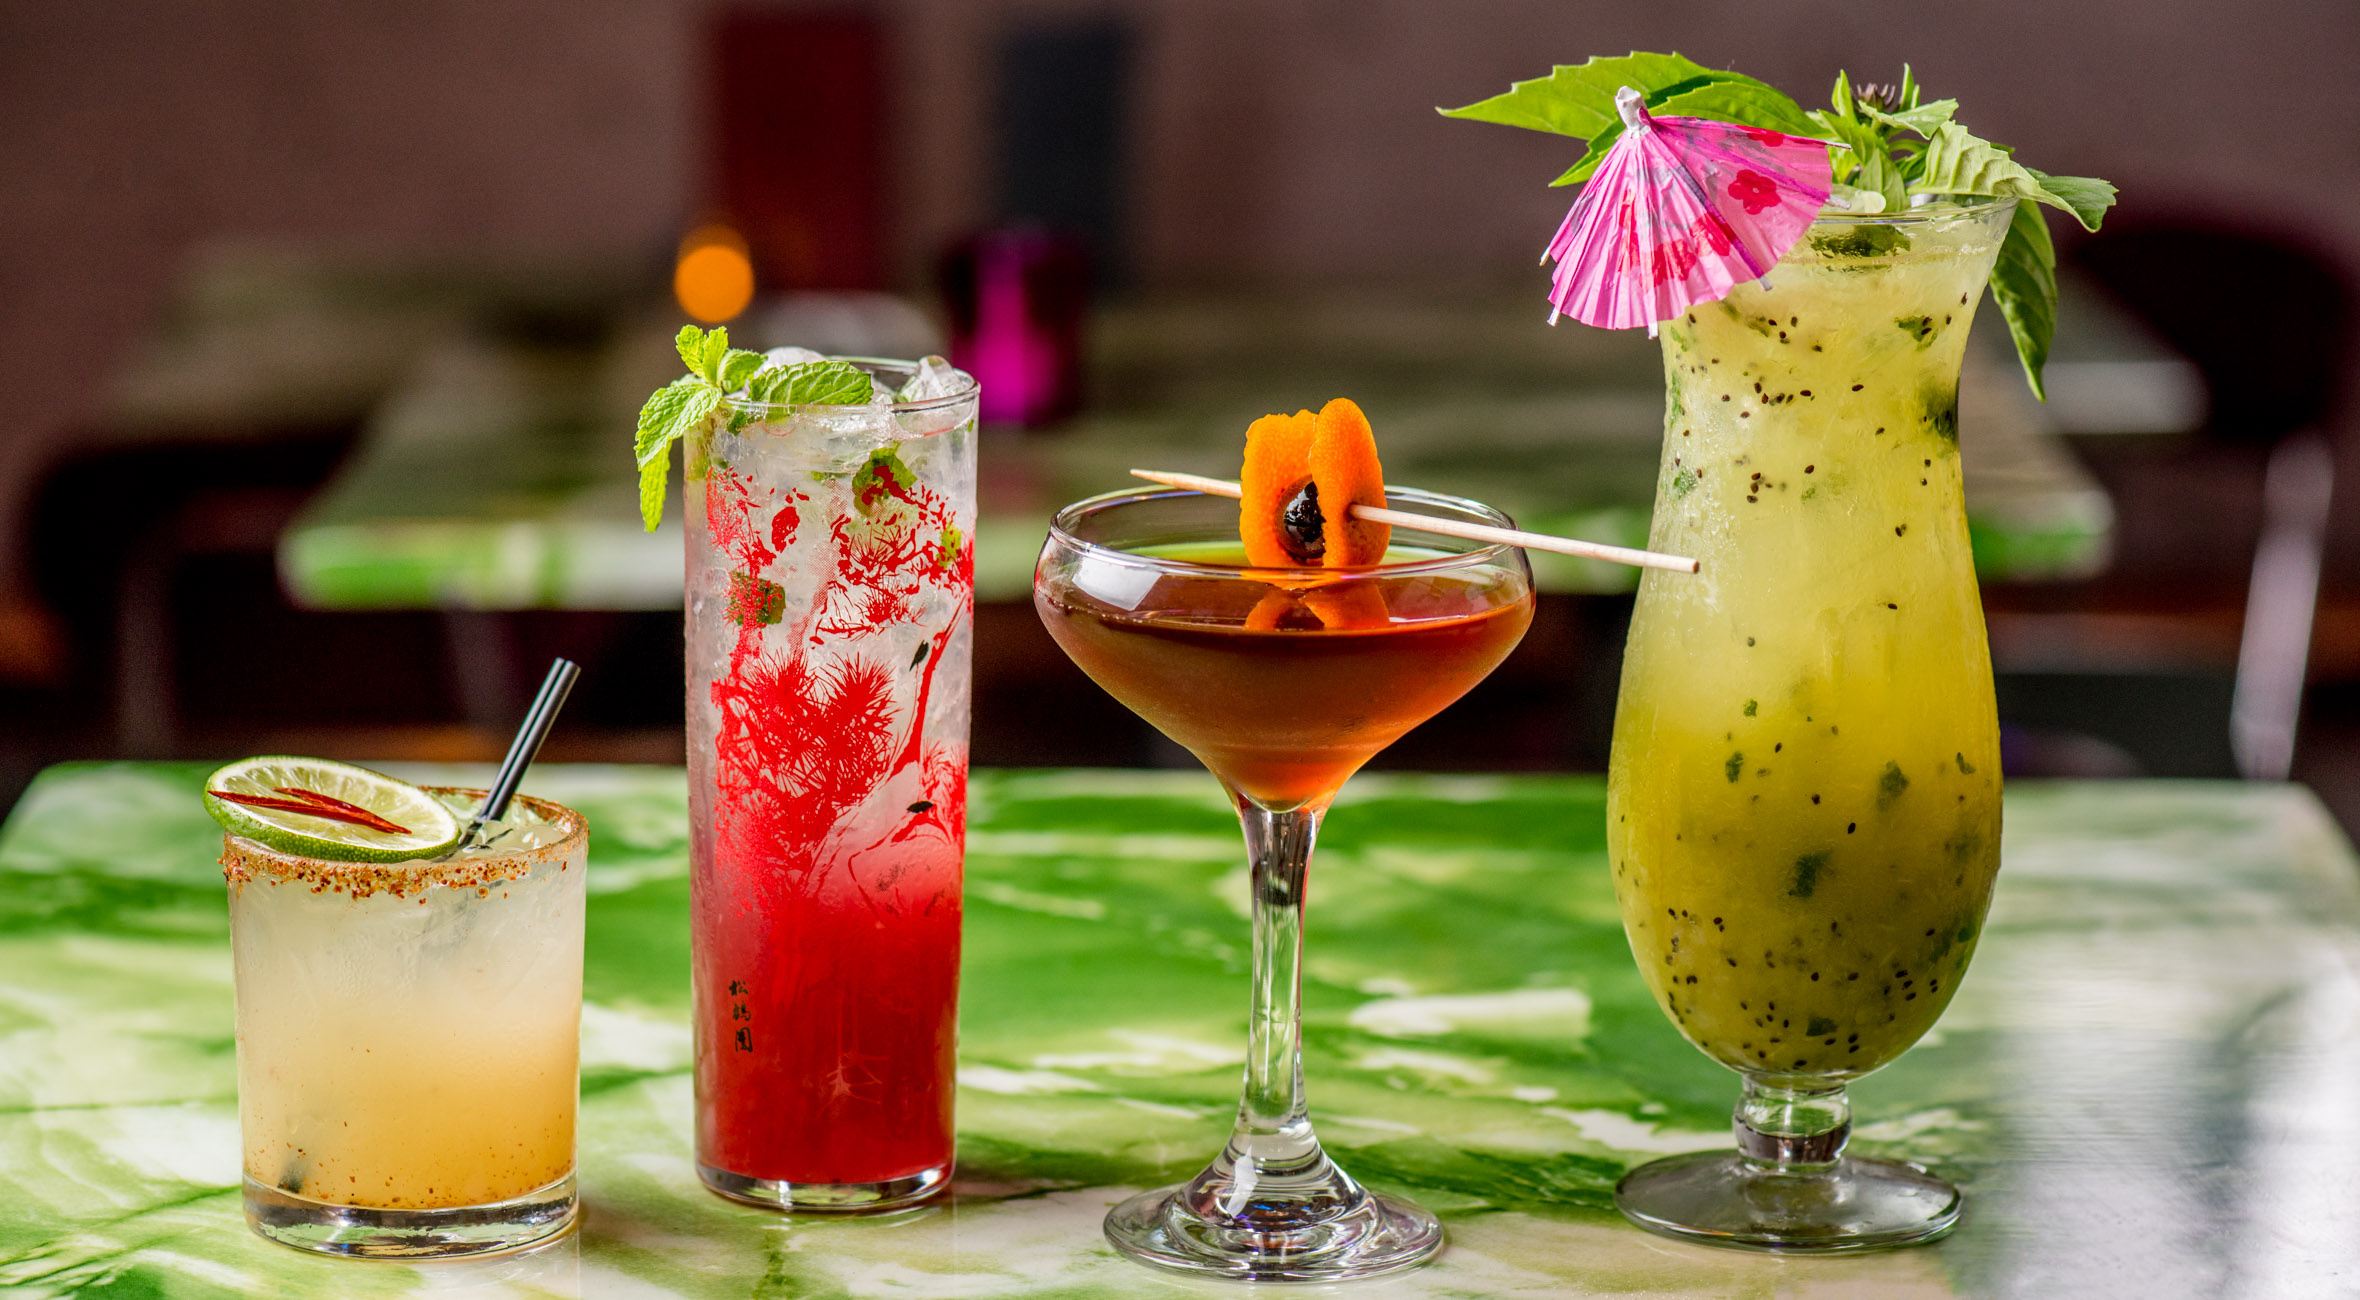 $30 Towards Whatever You like at Pokito – Visit One of the Best Cocktails Bars in the City